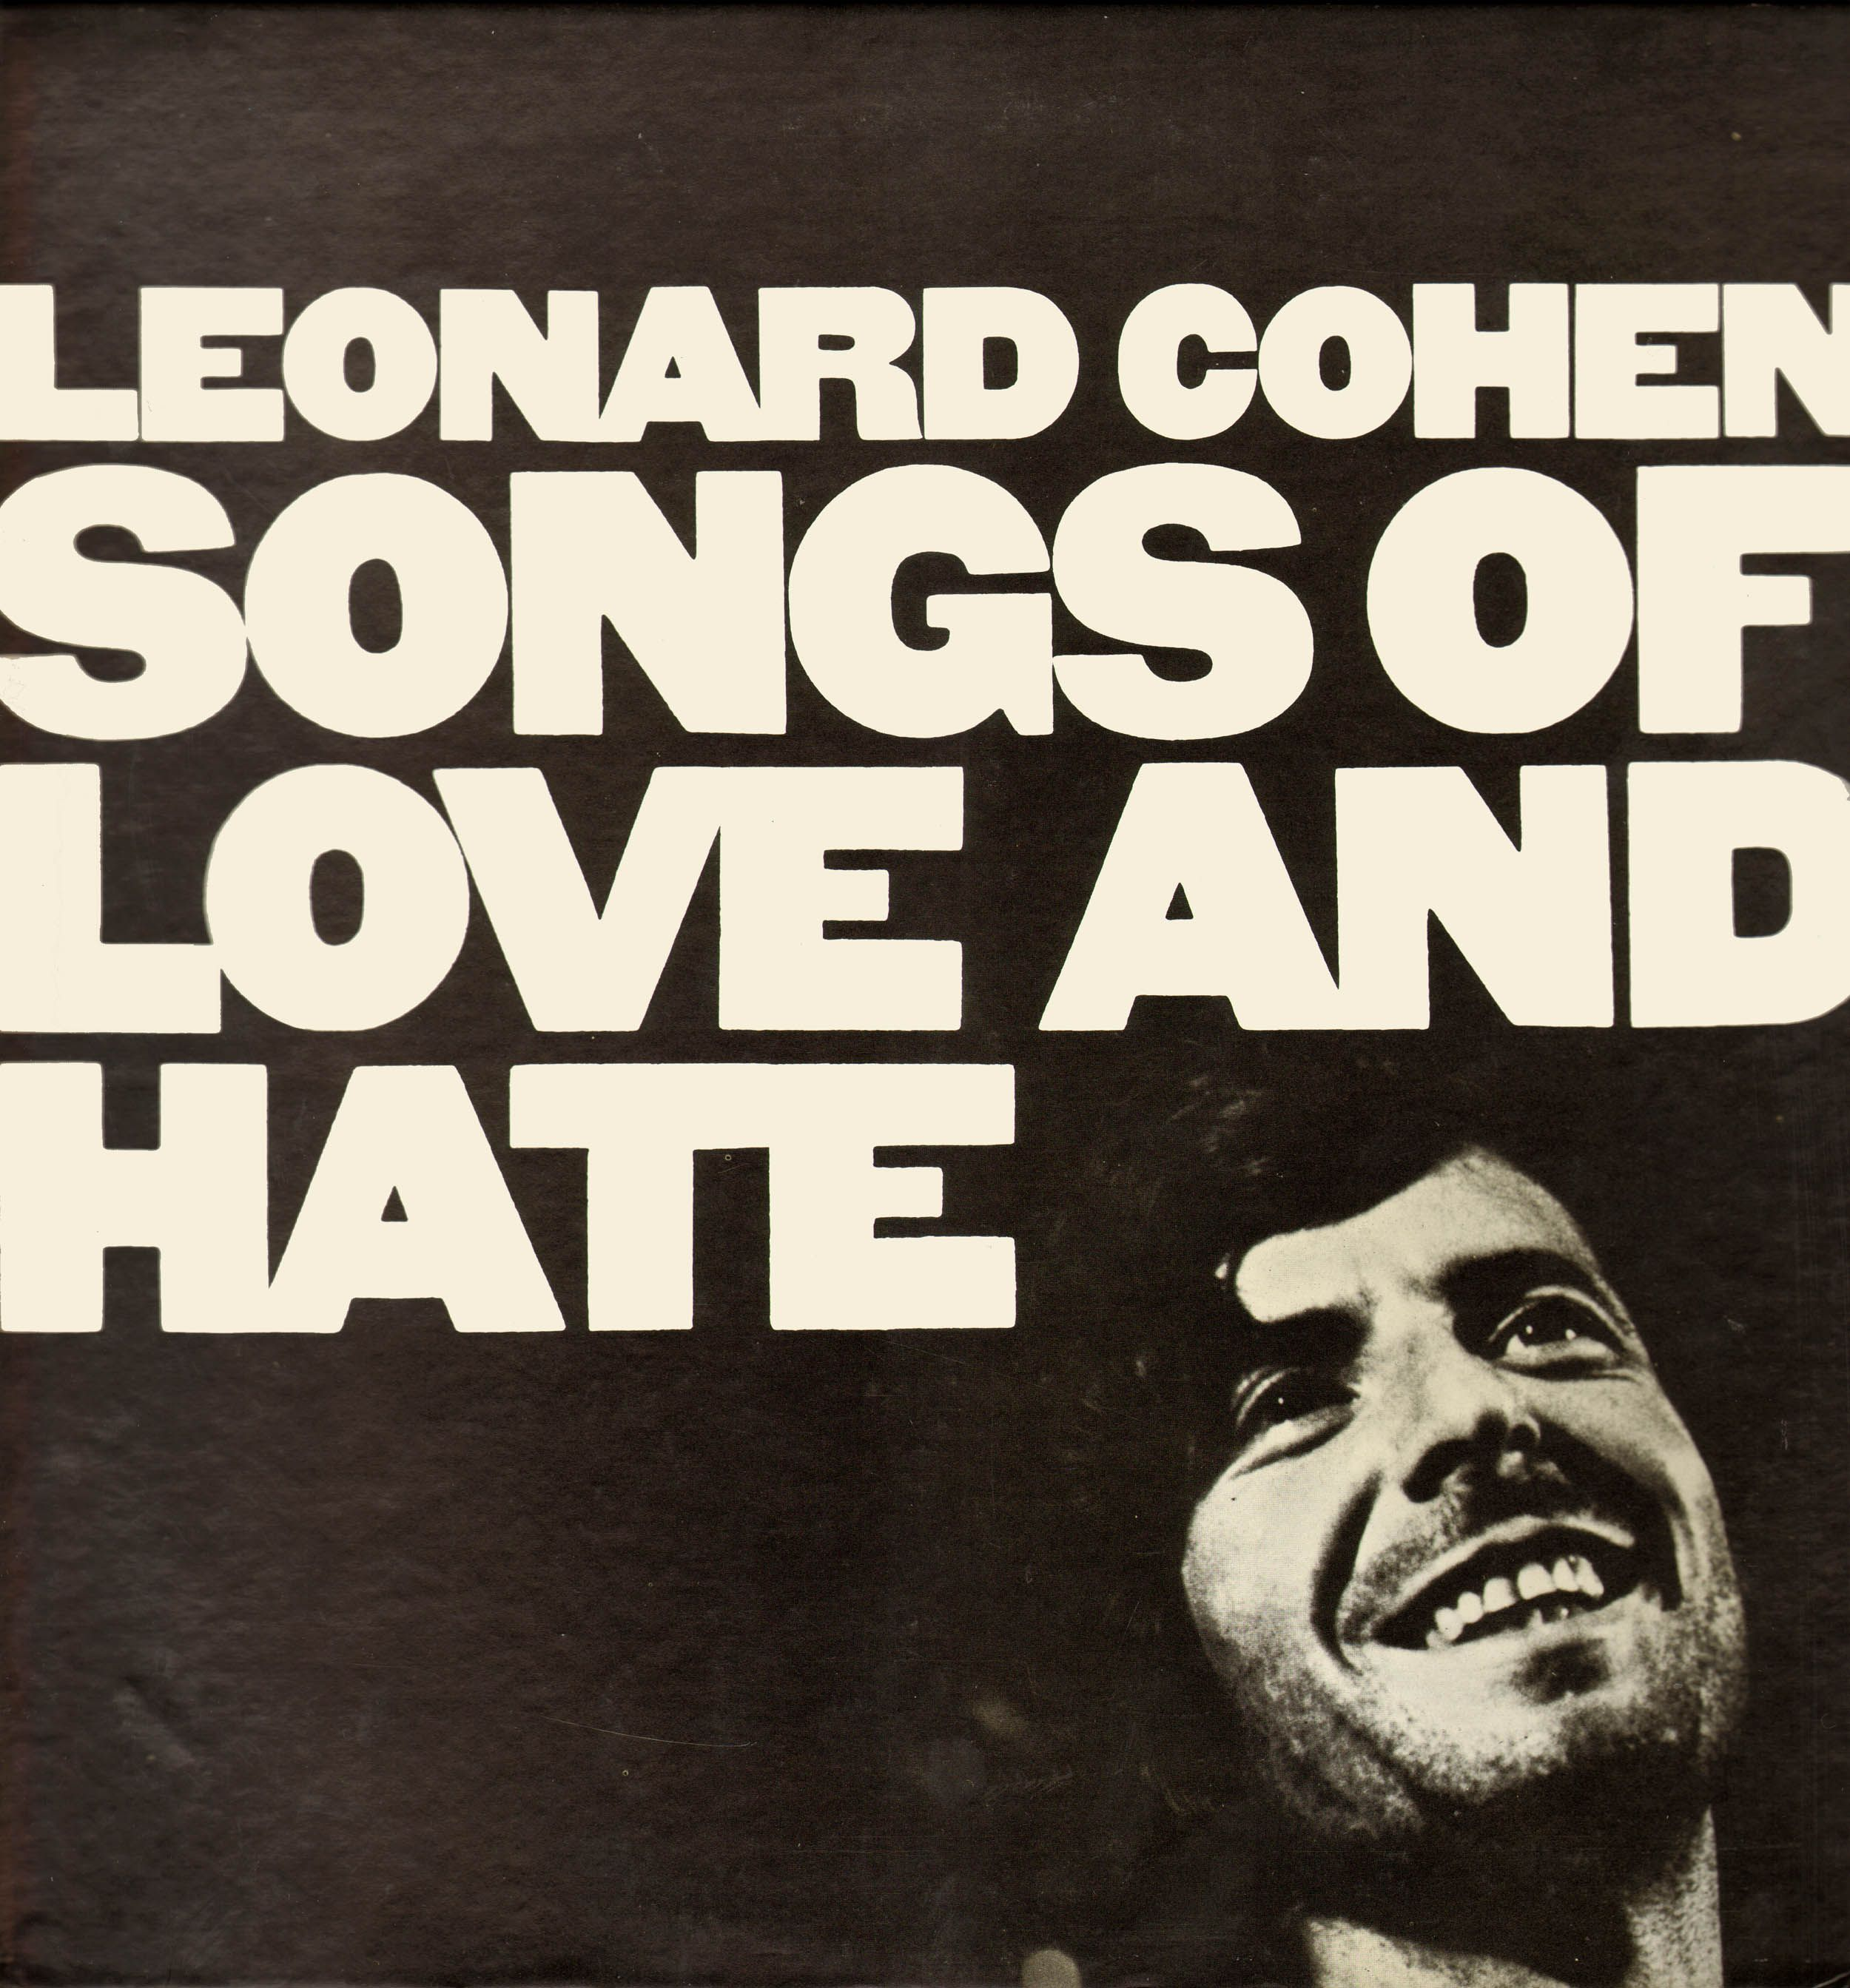 bf24ffde7ba4d Leonard Cohen- Songs of Love and Hate